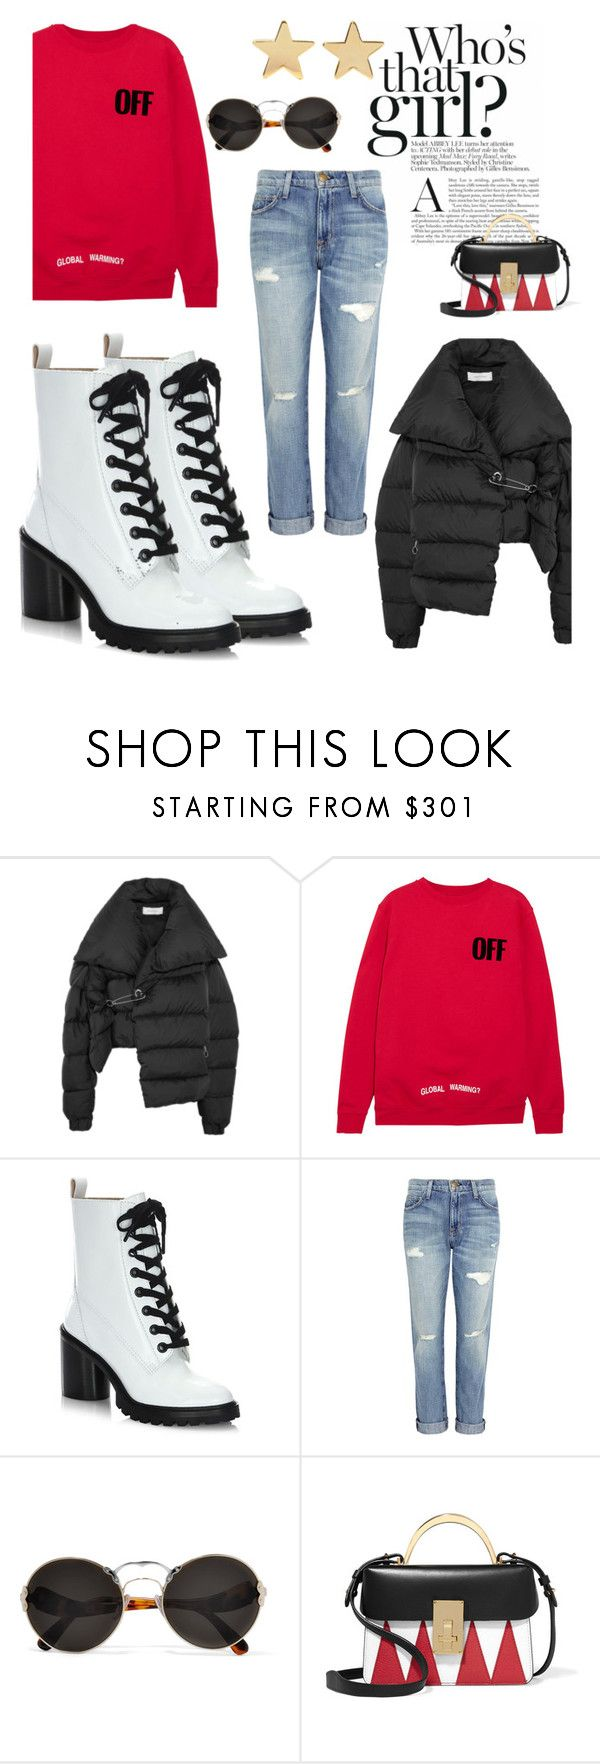 """that girl"" by stacy-gustin ❤ liked on Polyvore featuring Marques'Almeida, Off-White, Marc Jacobs, Current/Elliott, Prada, The Volon, Jennifer Meyer Jewelry and ootd"